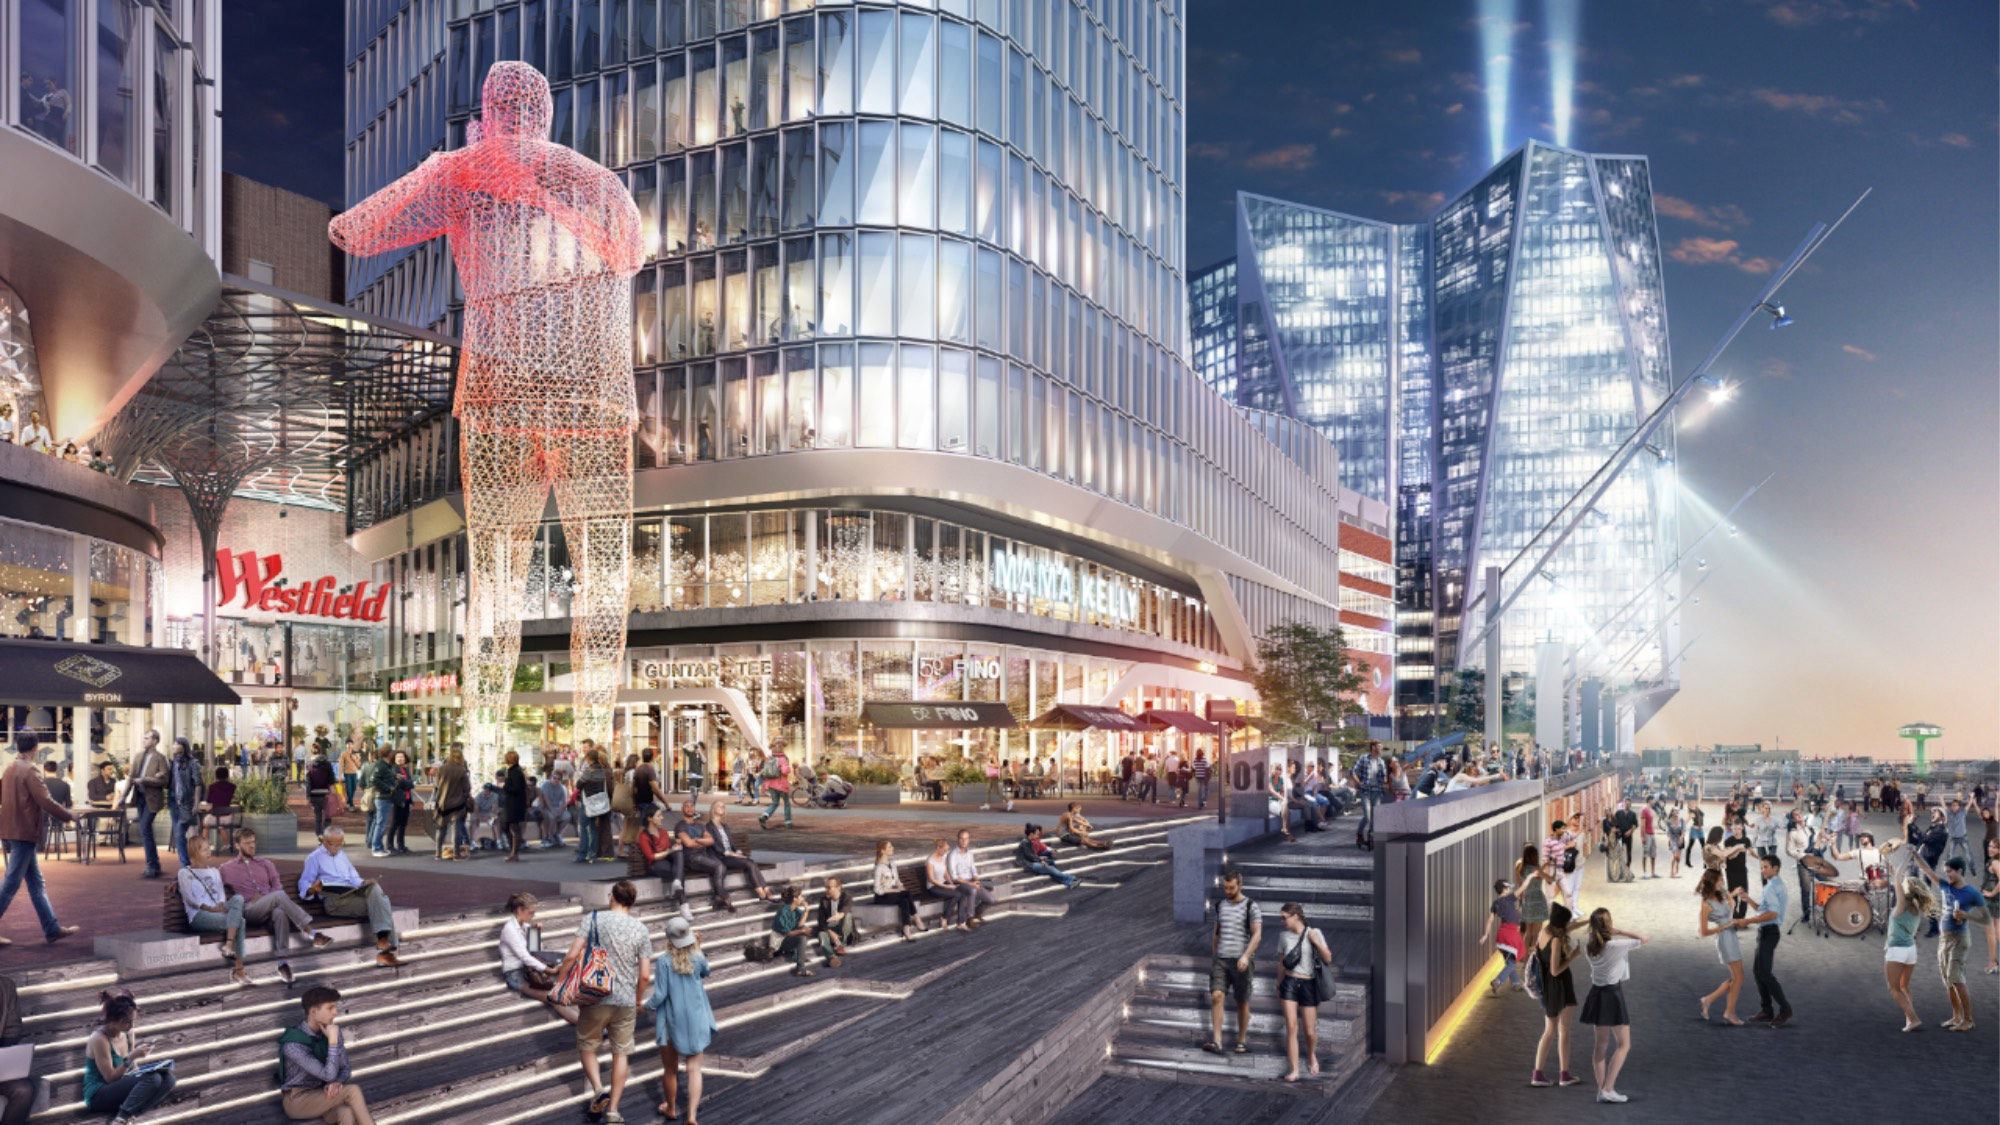 An illustration of a lively Westfield Hamburg area